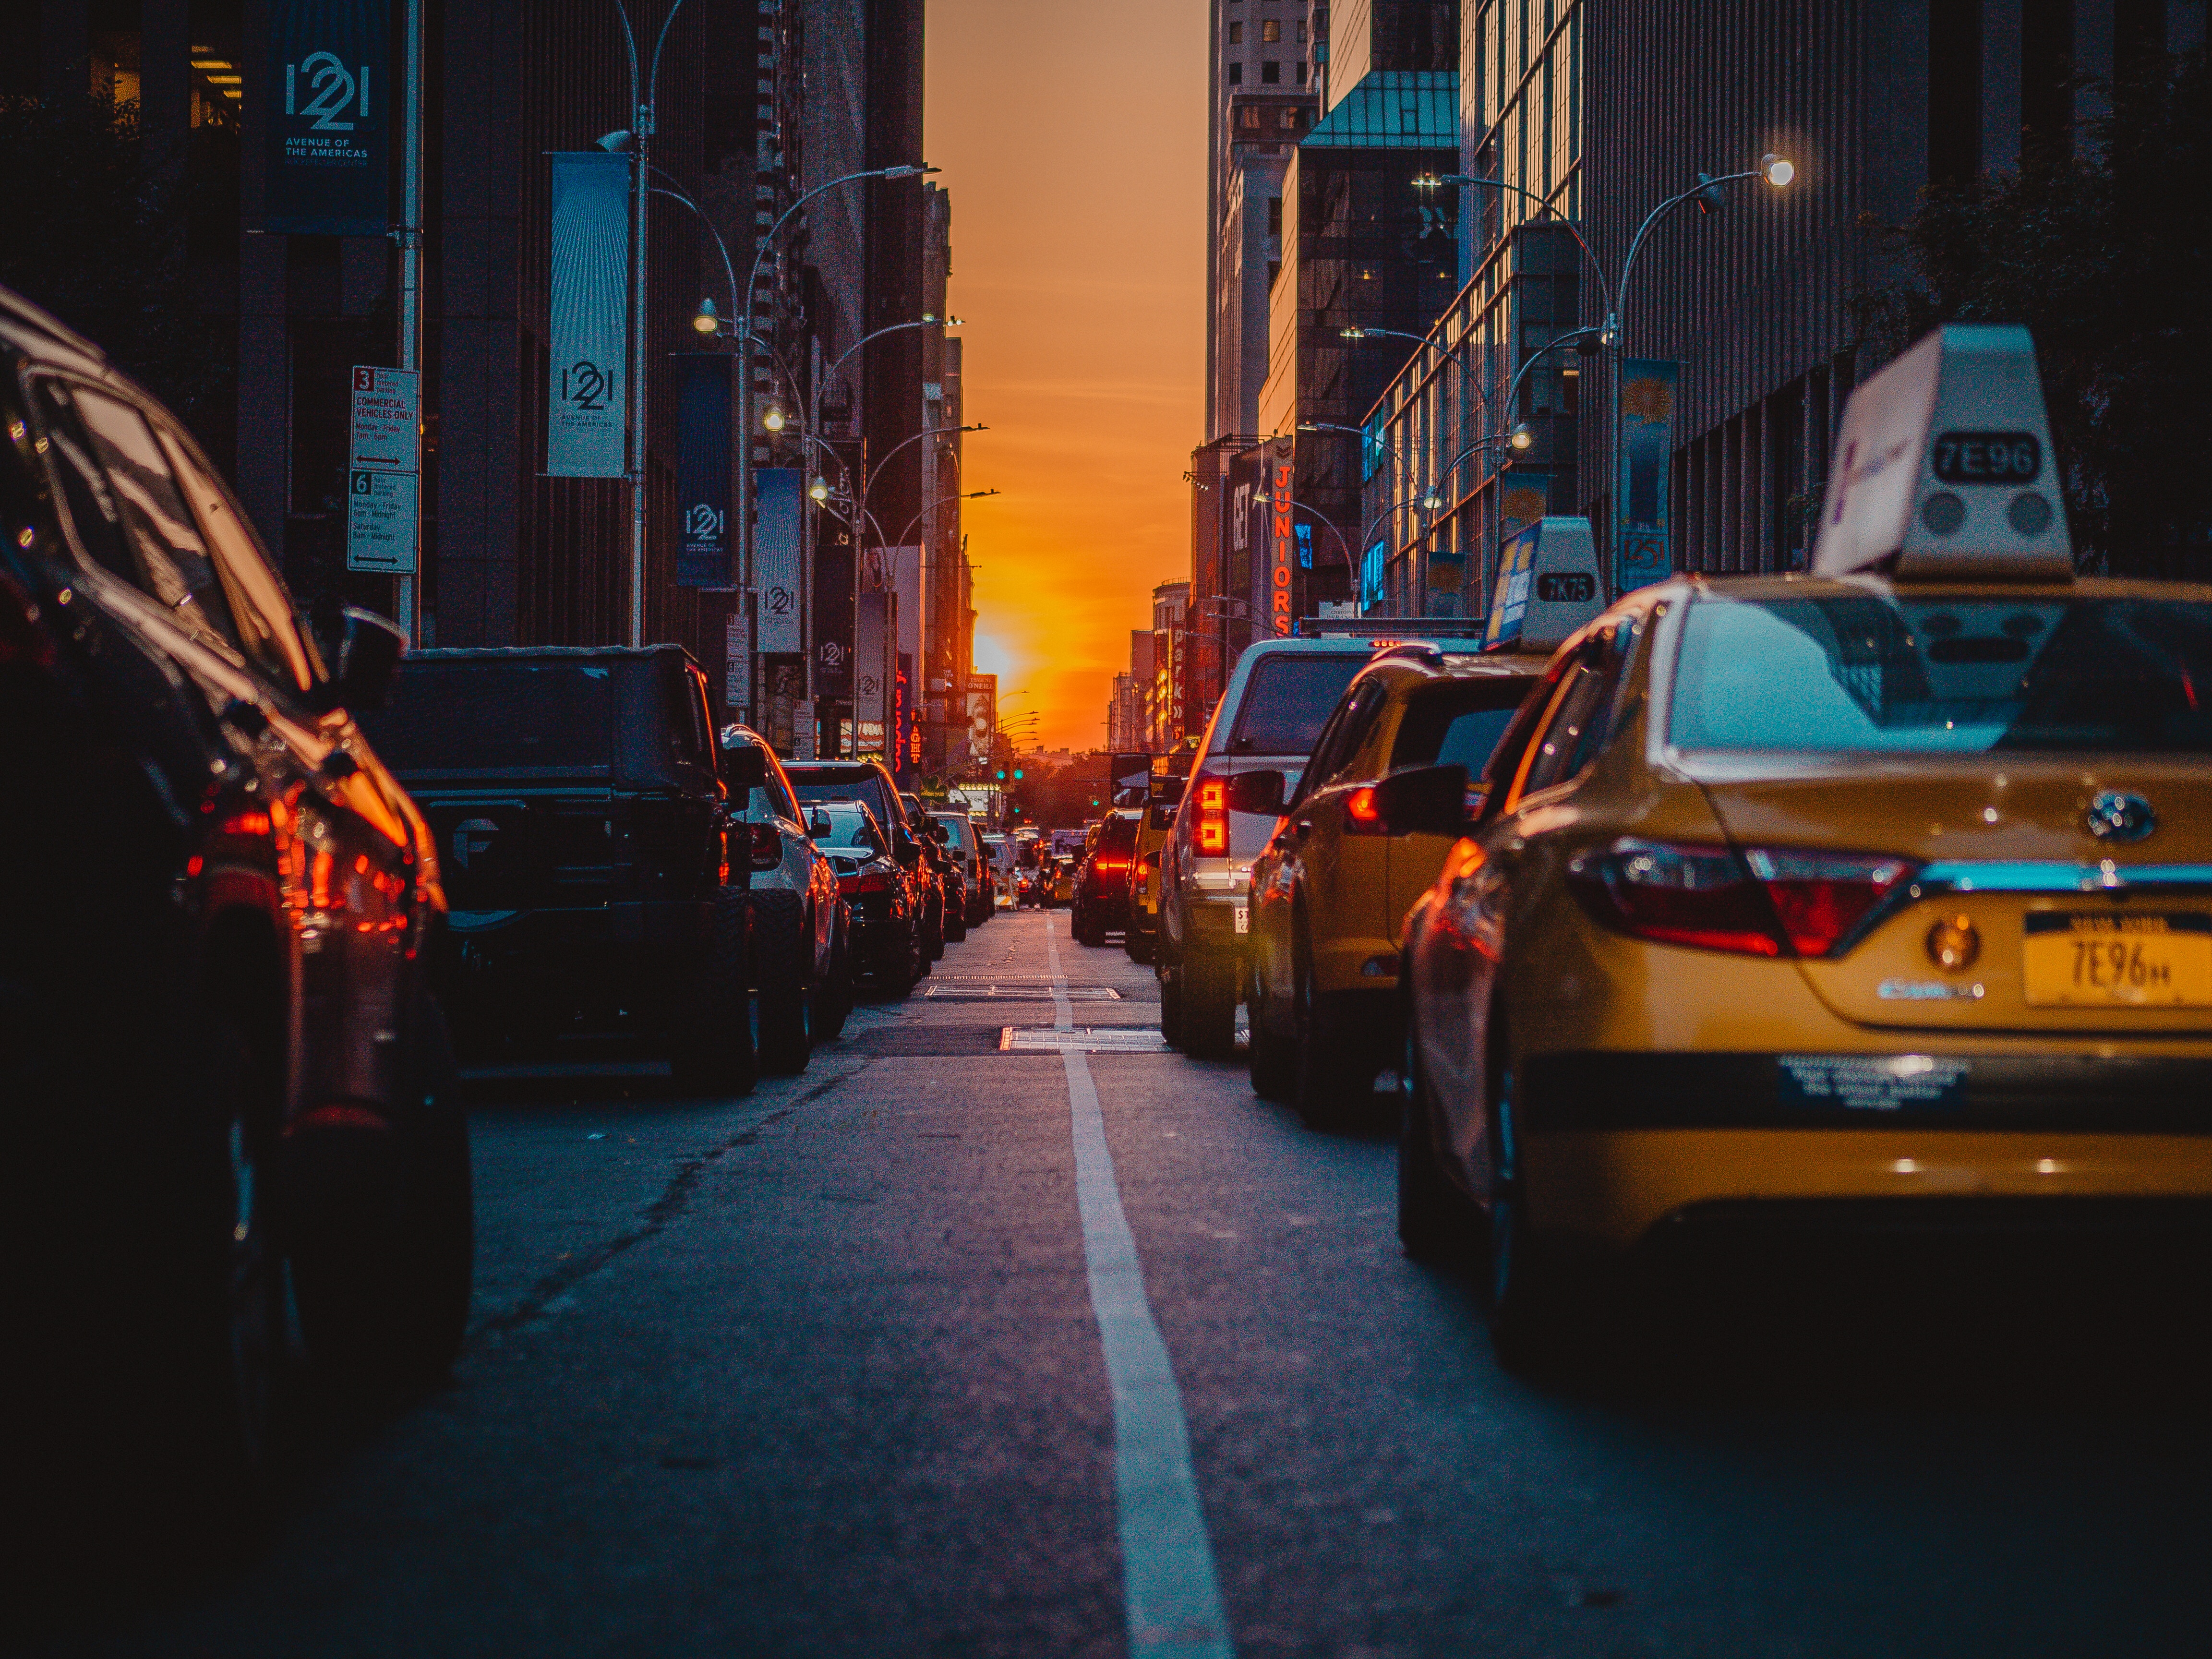 136739 download wallpaper Traffic, Cars, City, New York, Usa, United States, Cities screensavers and pictures for free